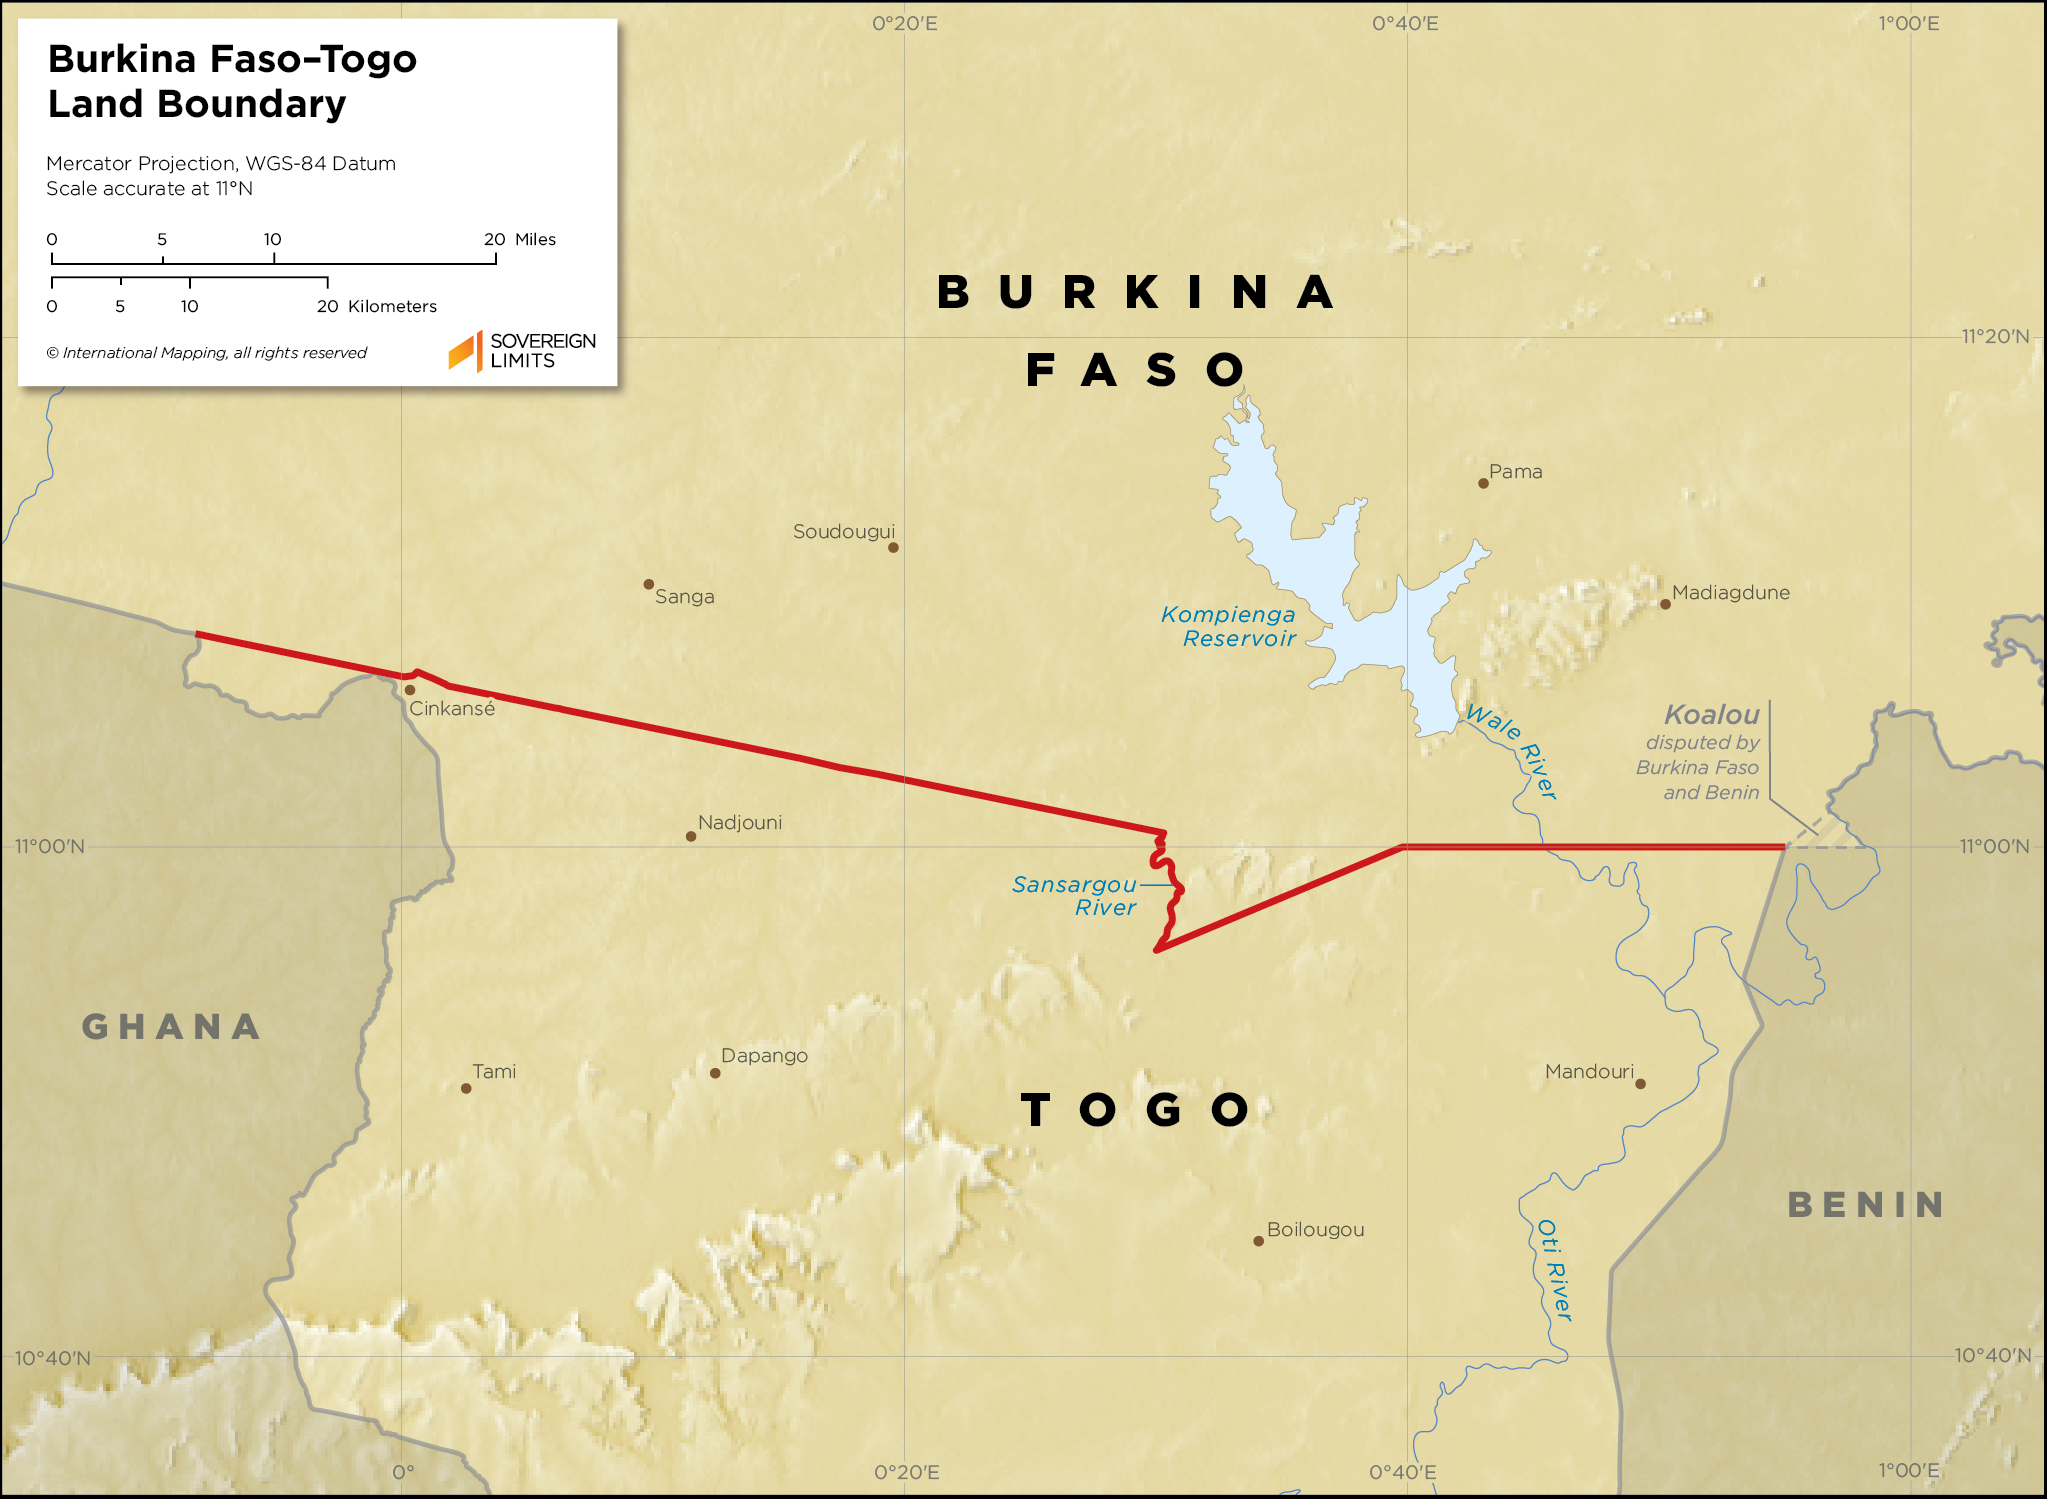 Map showing the land boundary between Burkina Faso and Togo